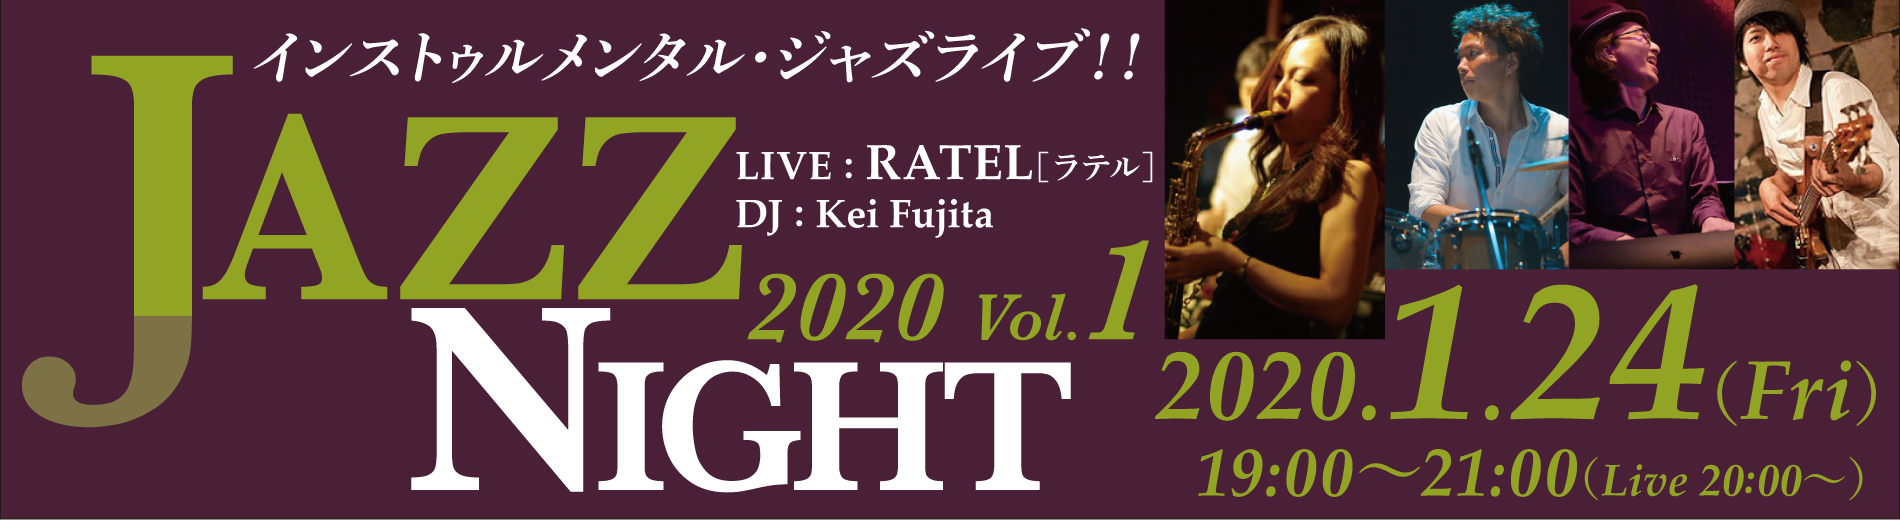 JAZZ NIGHT 2020 Vol.1